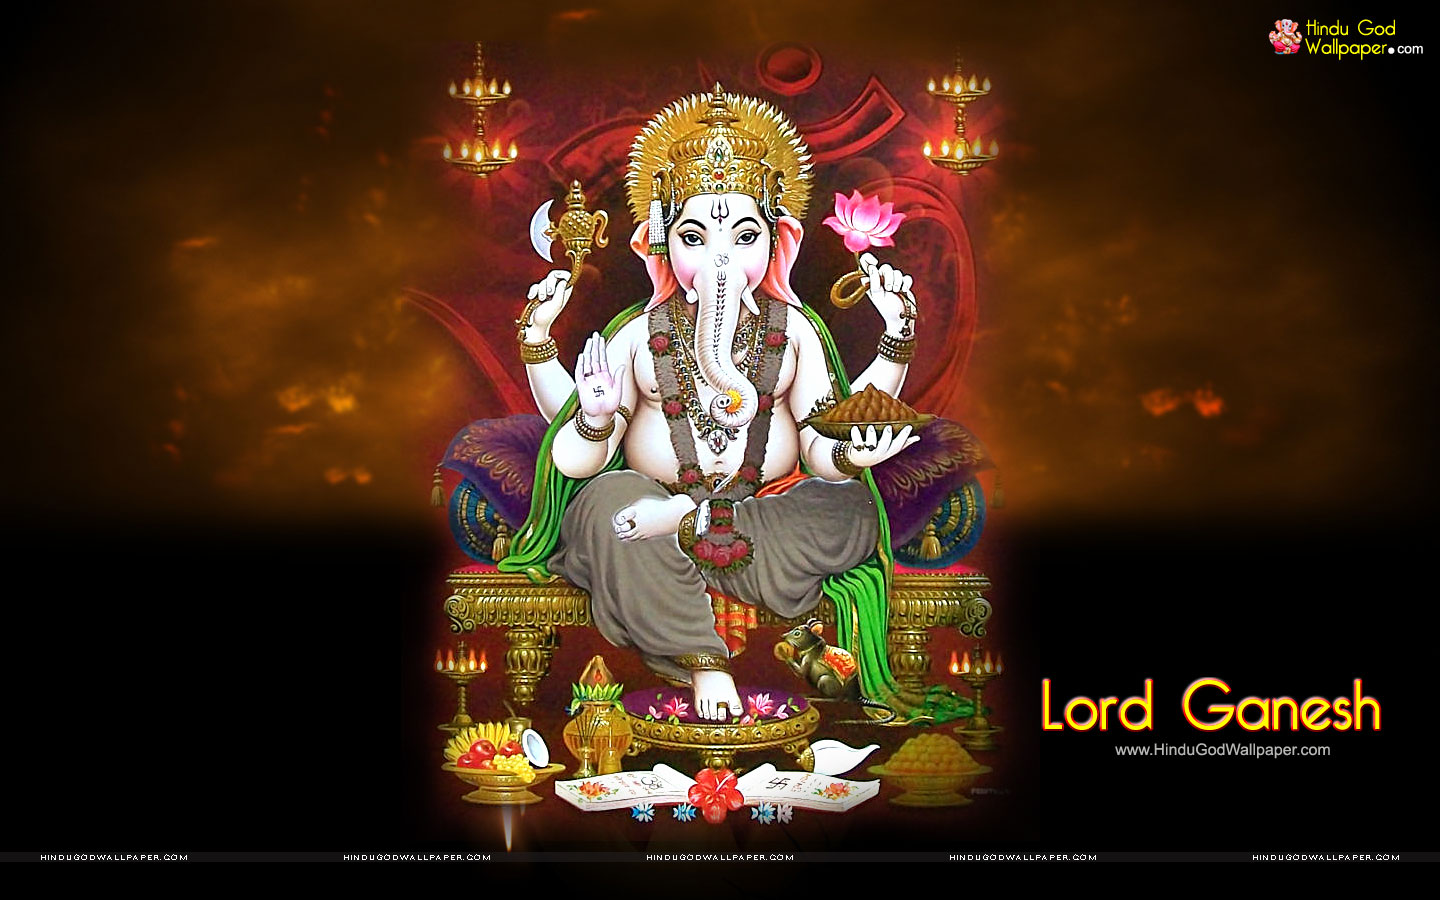 Shree Ganesh Hd Images: LORD GANESHA HD WALLPAPERS FREE DOWNLOAD